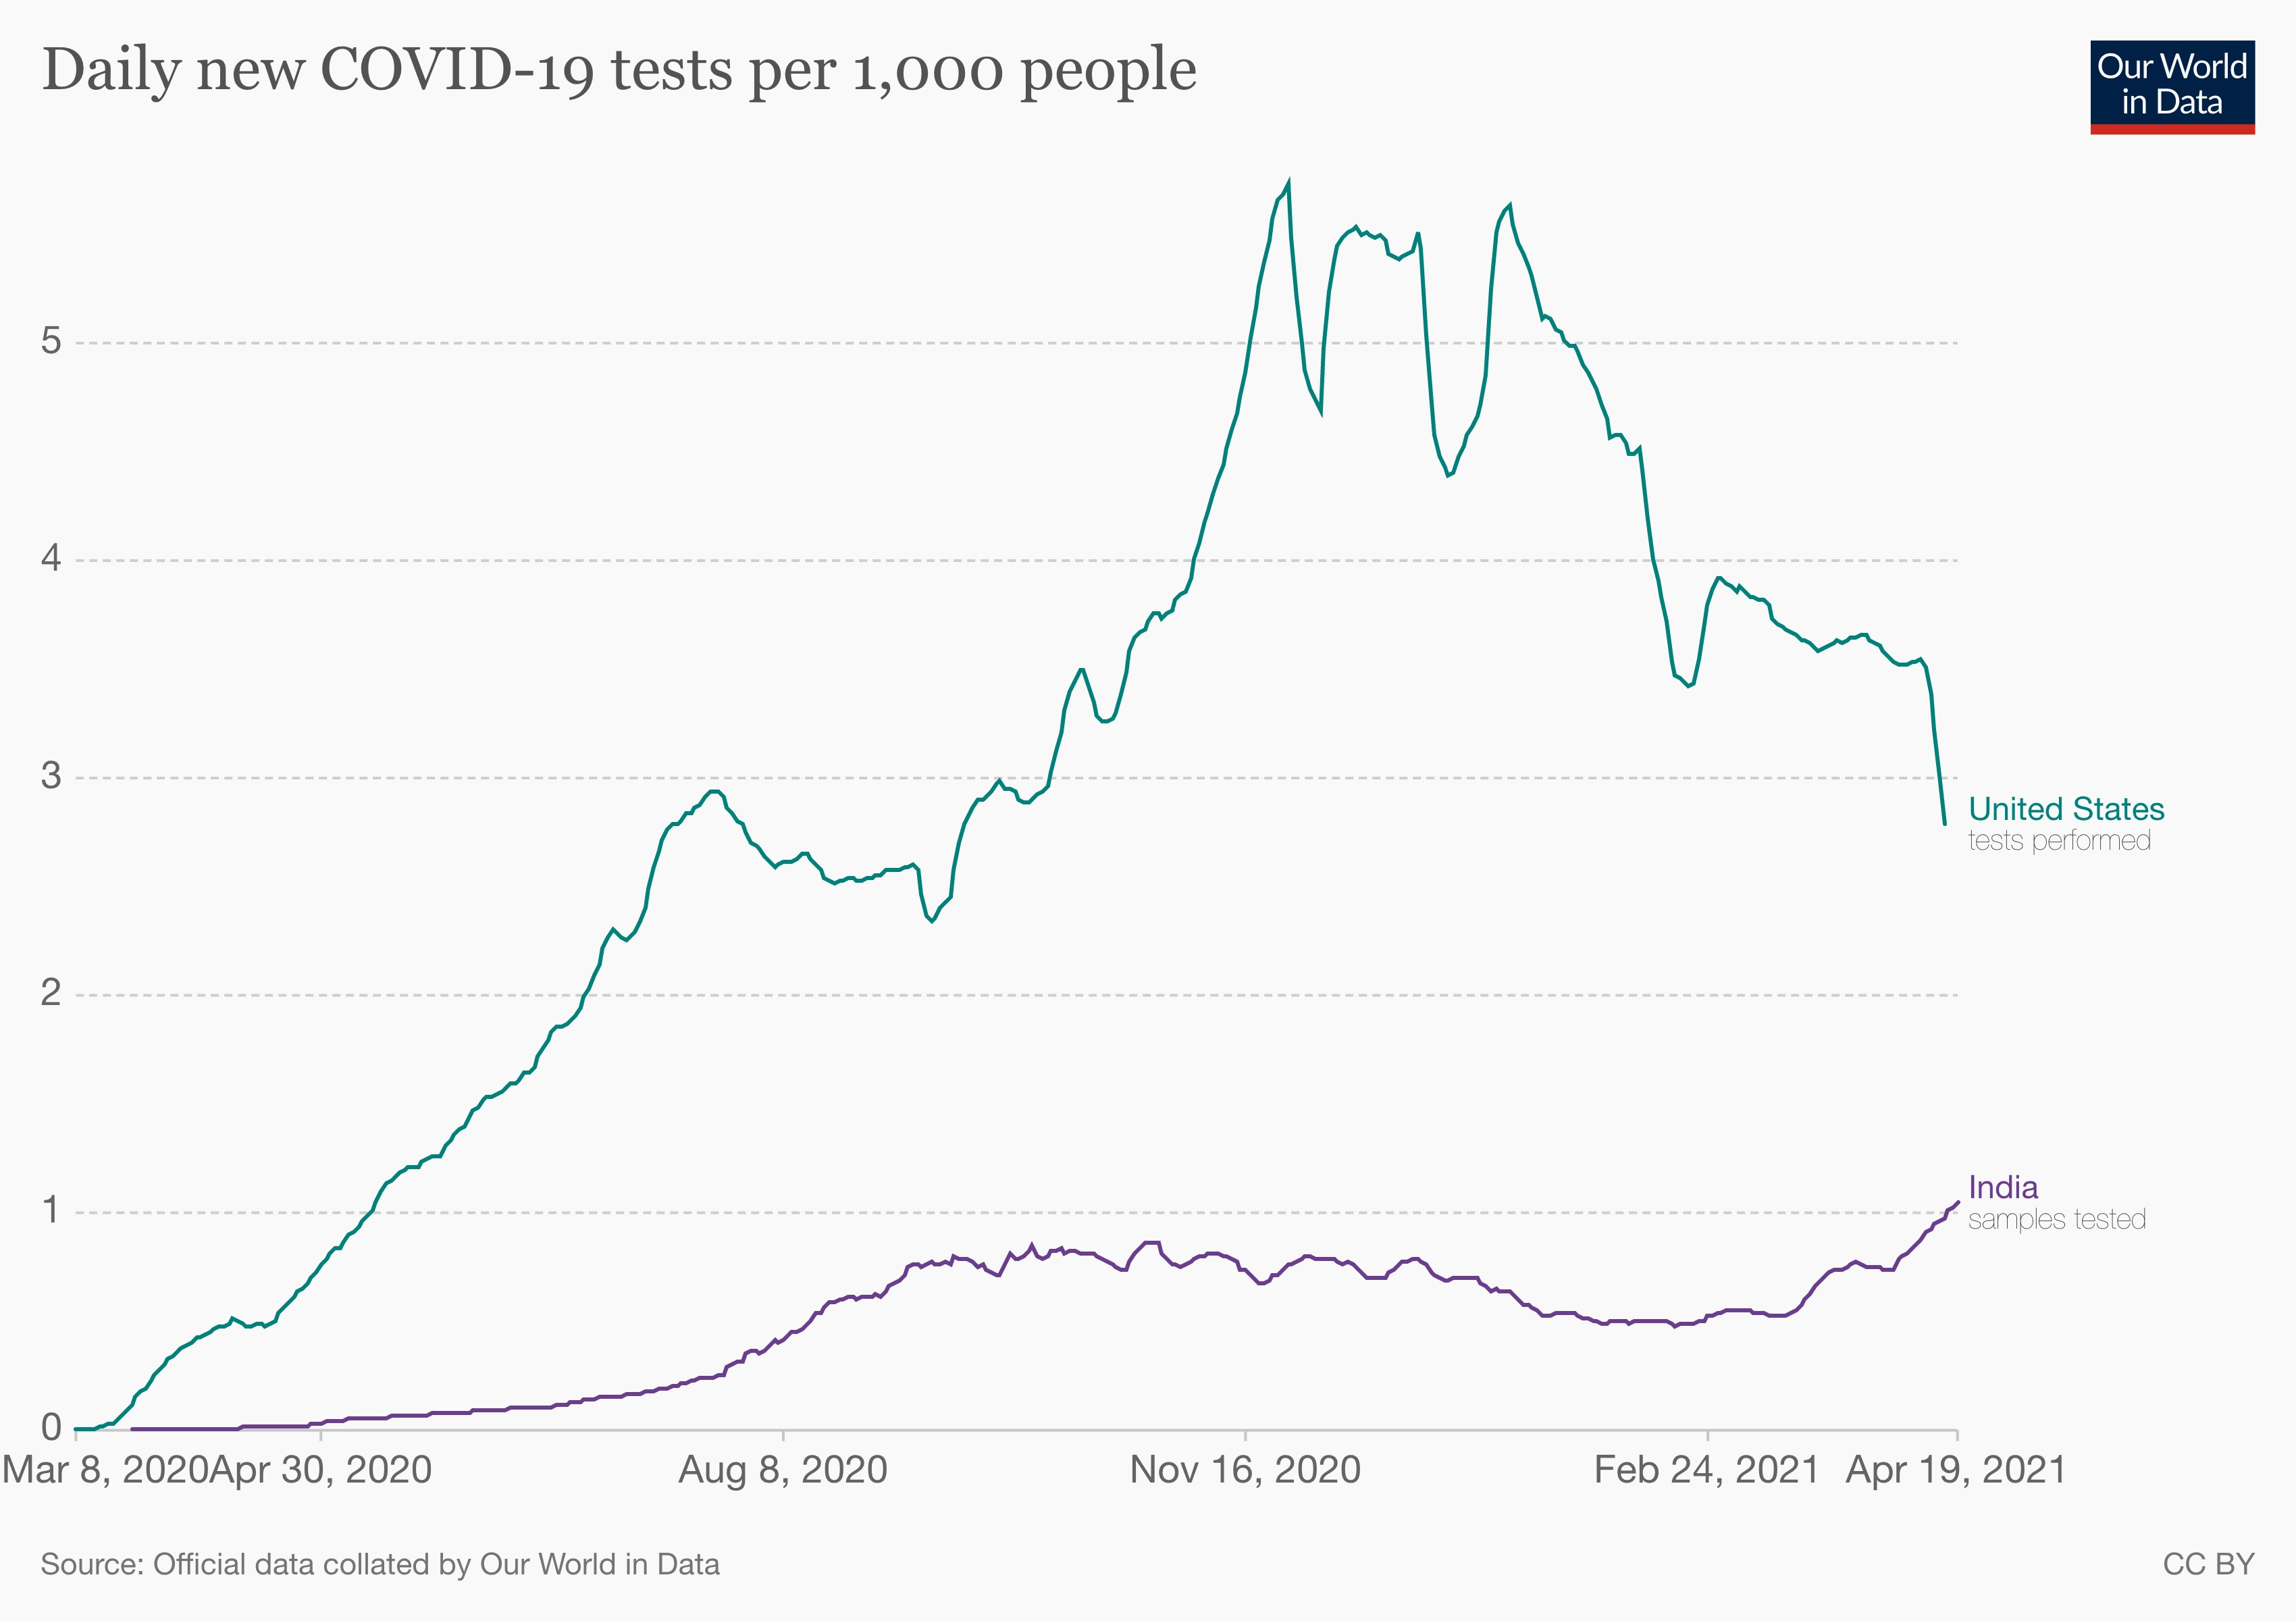 Covid-19 tests in India and the US, relative to their populations.